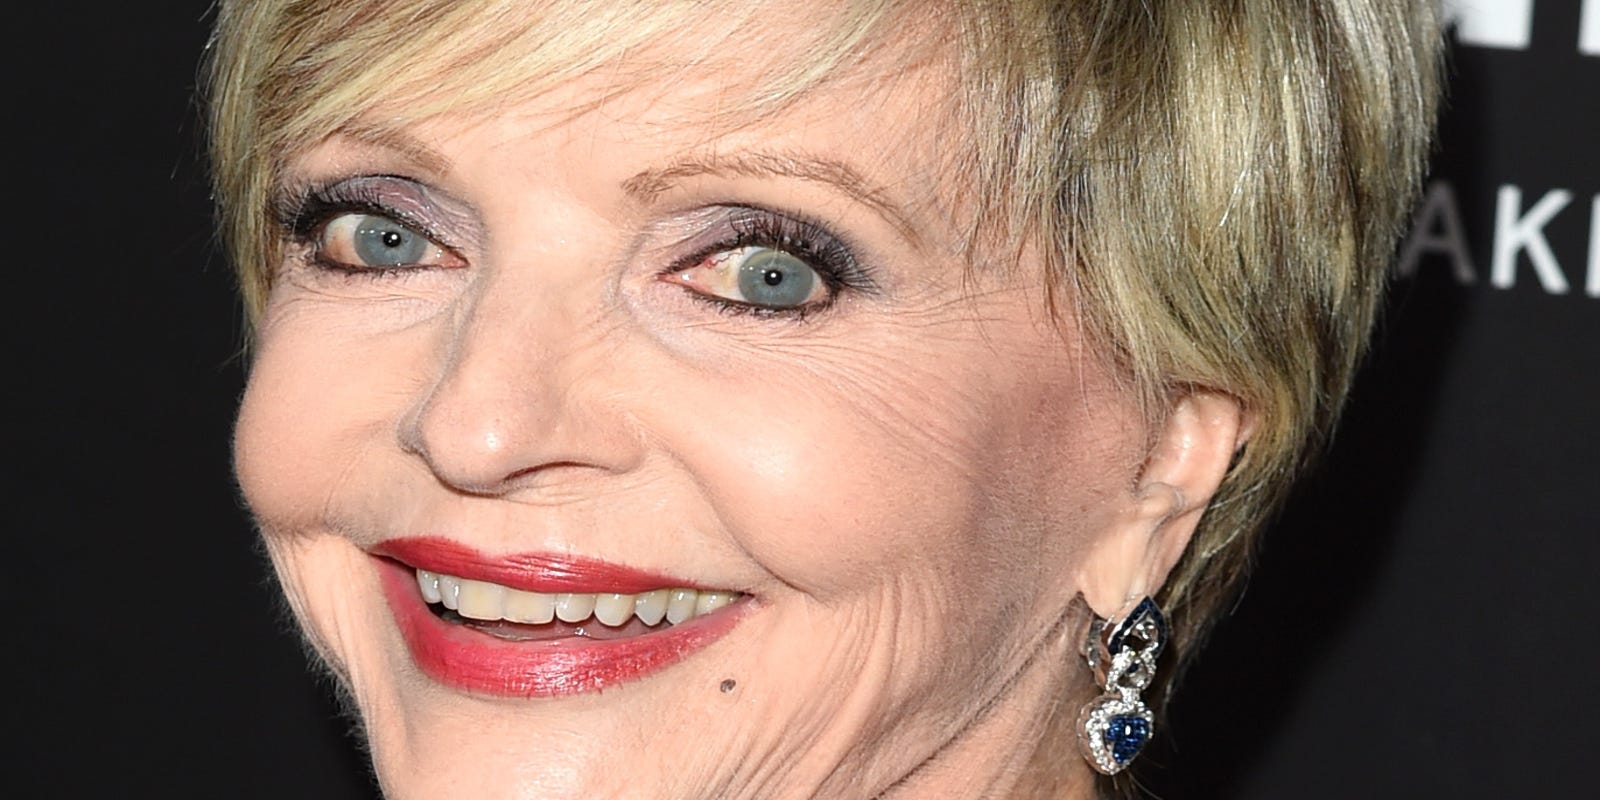 Florence Henderson Mom On Tvs Brady Bunch Dies At 82 Radio Wave Diagram Http Hollywoodbollywood Co In Hoadmin